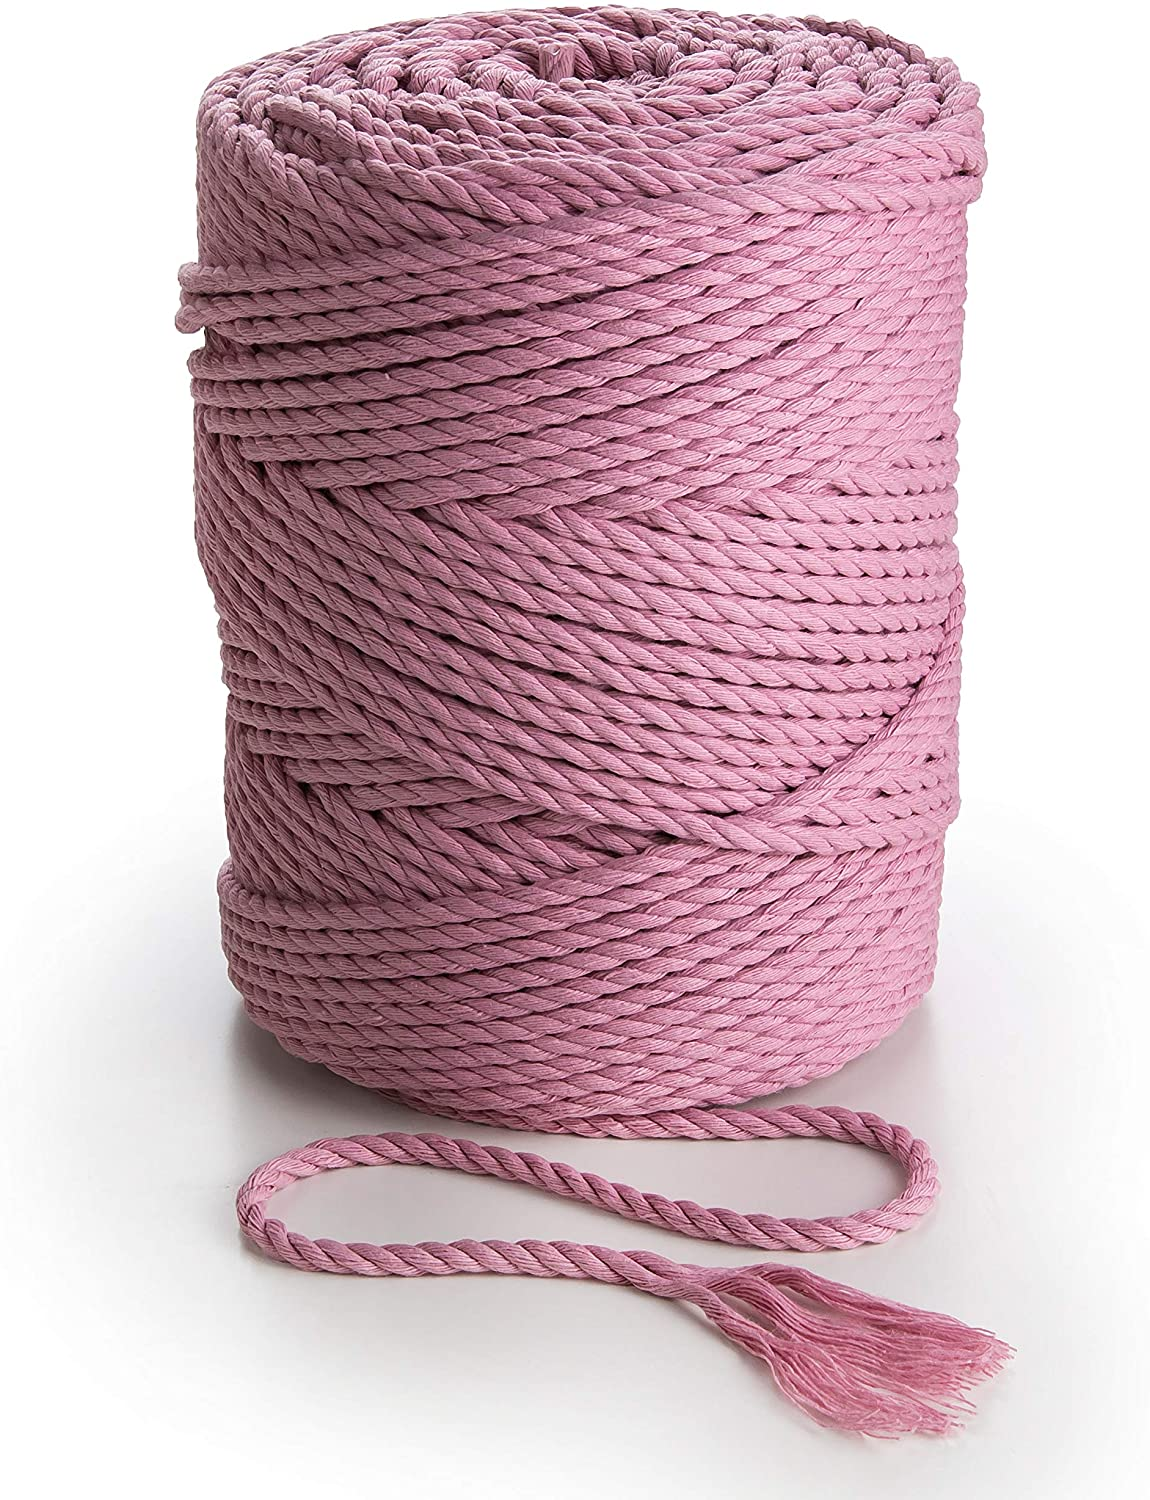 Dusty Pink Macrame Rope 4mm Soft Cotton Cord 492 feet Thick Macrame String for Plant Hangers Wall Art